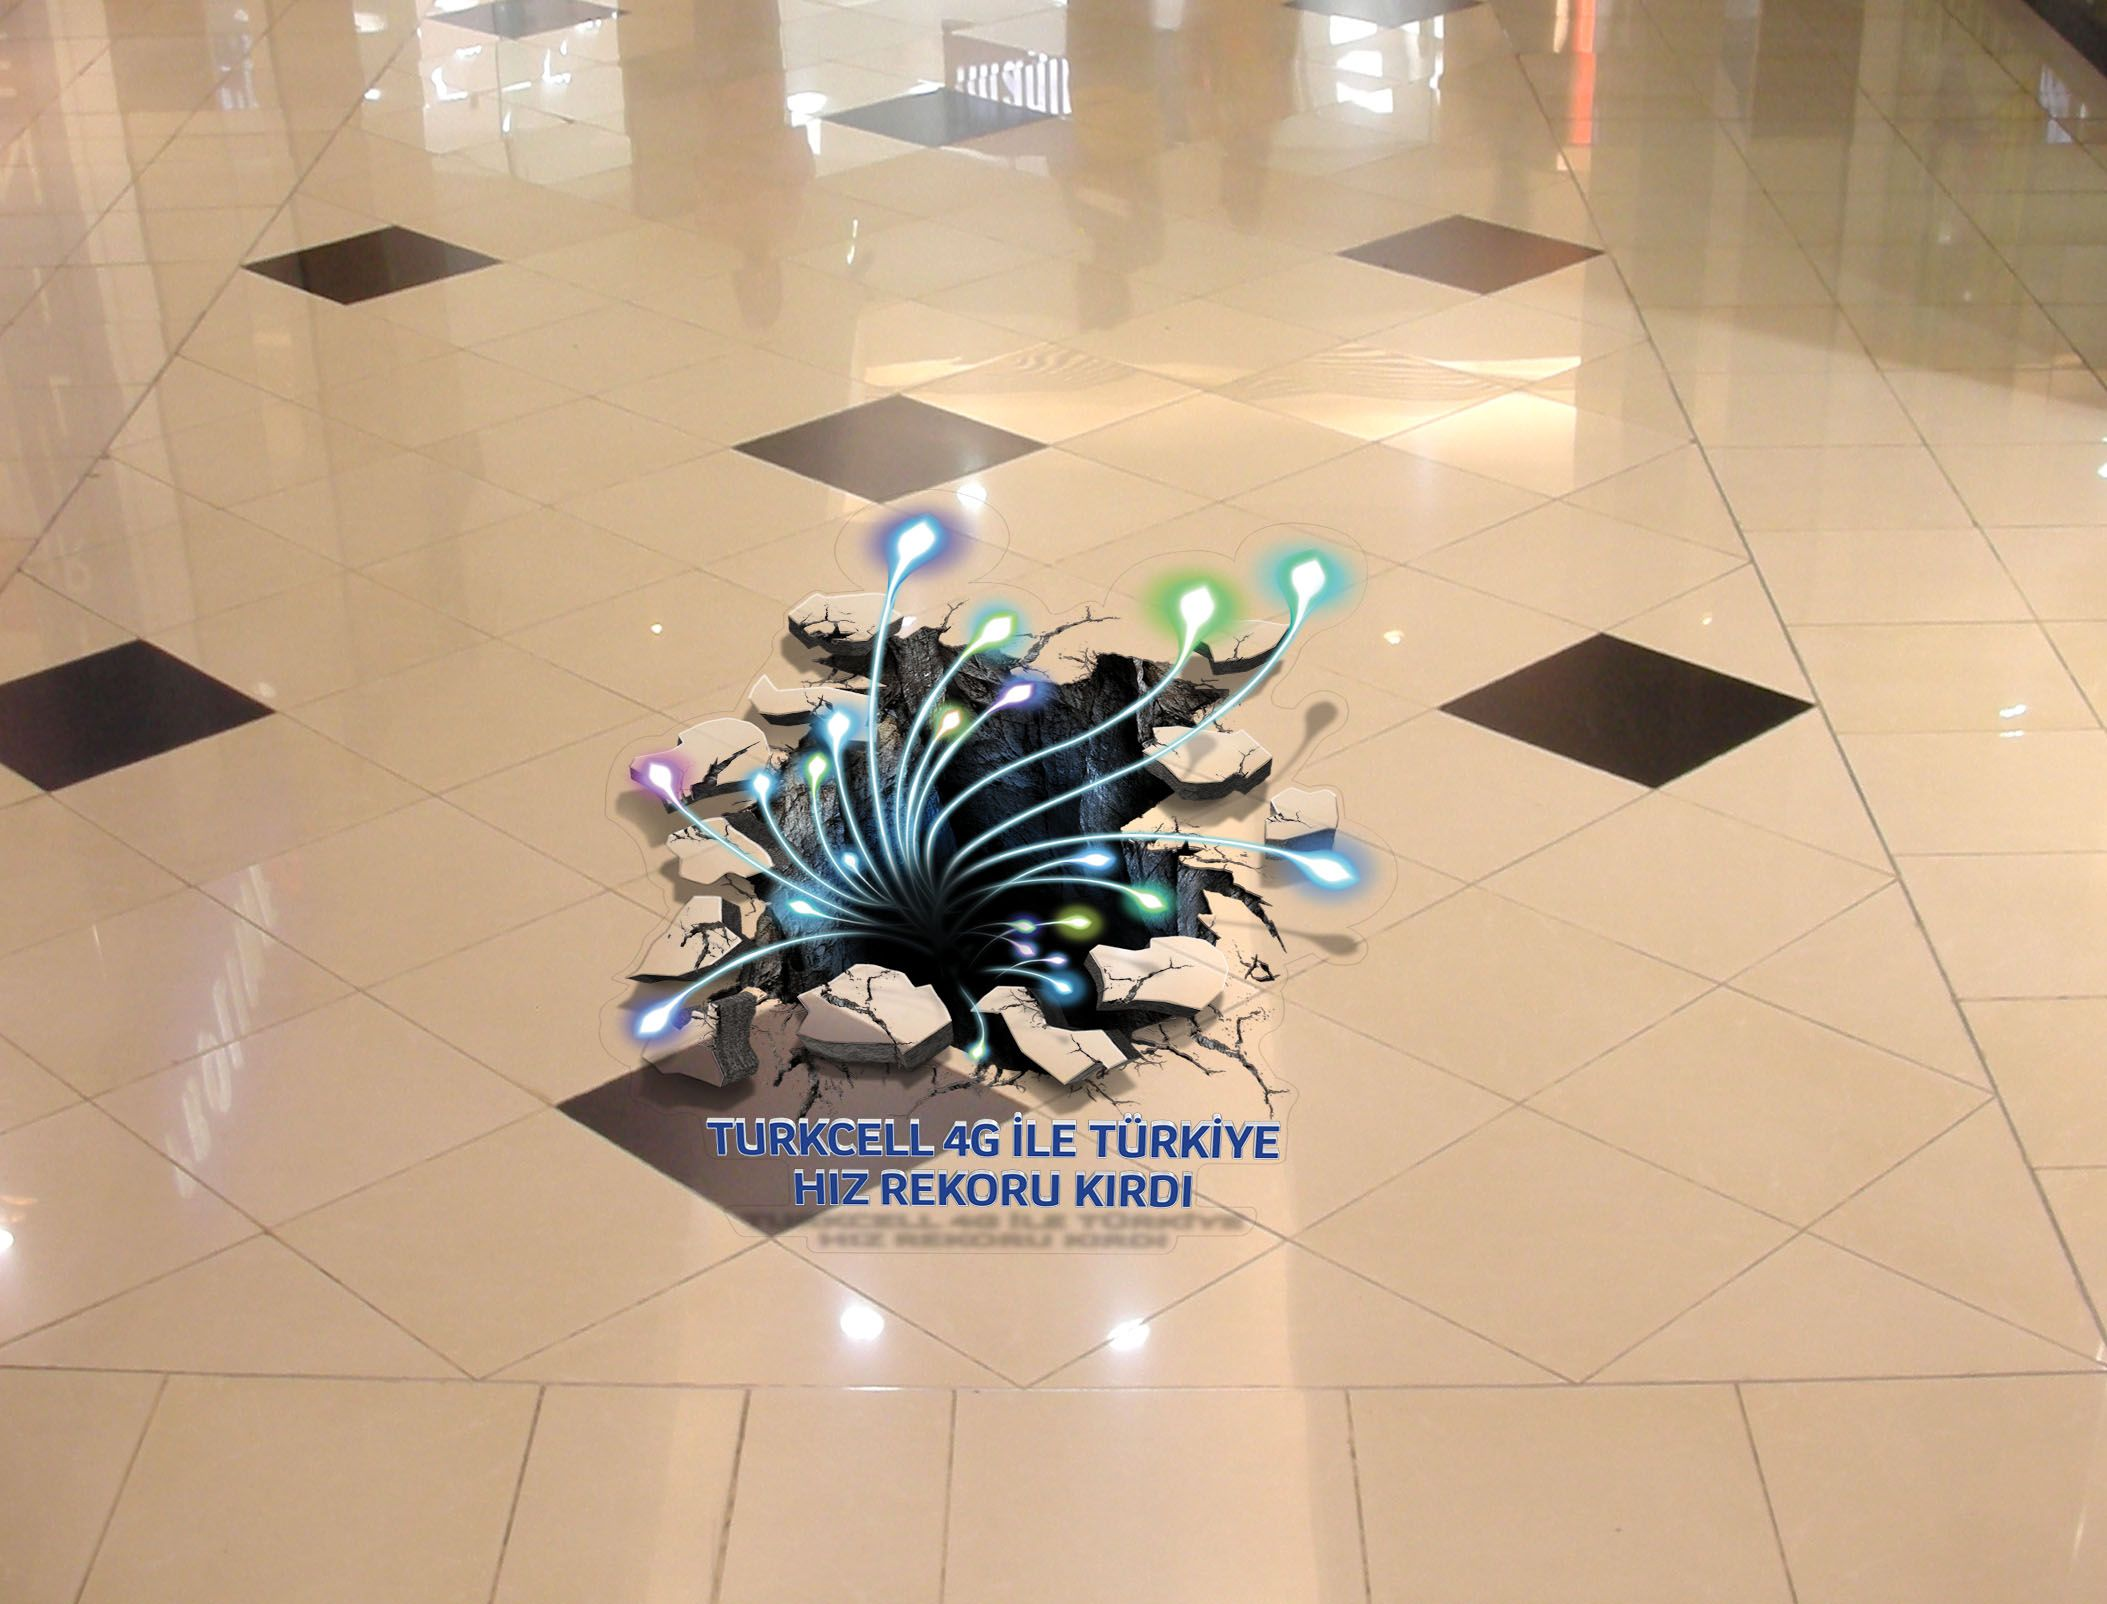 This 3D floor graphic was designed and installed across